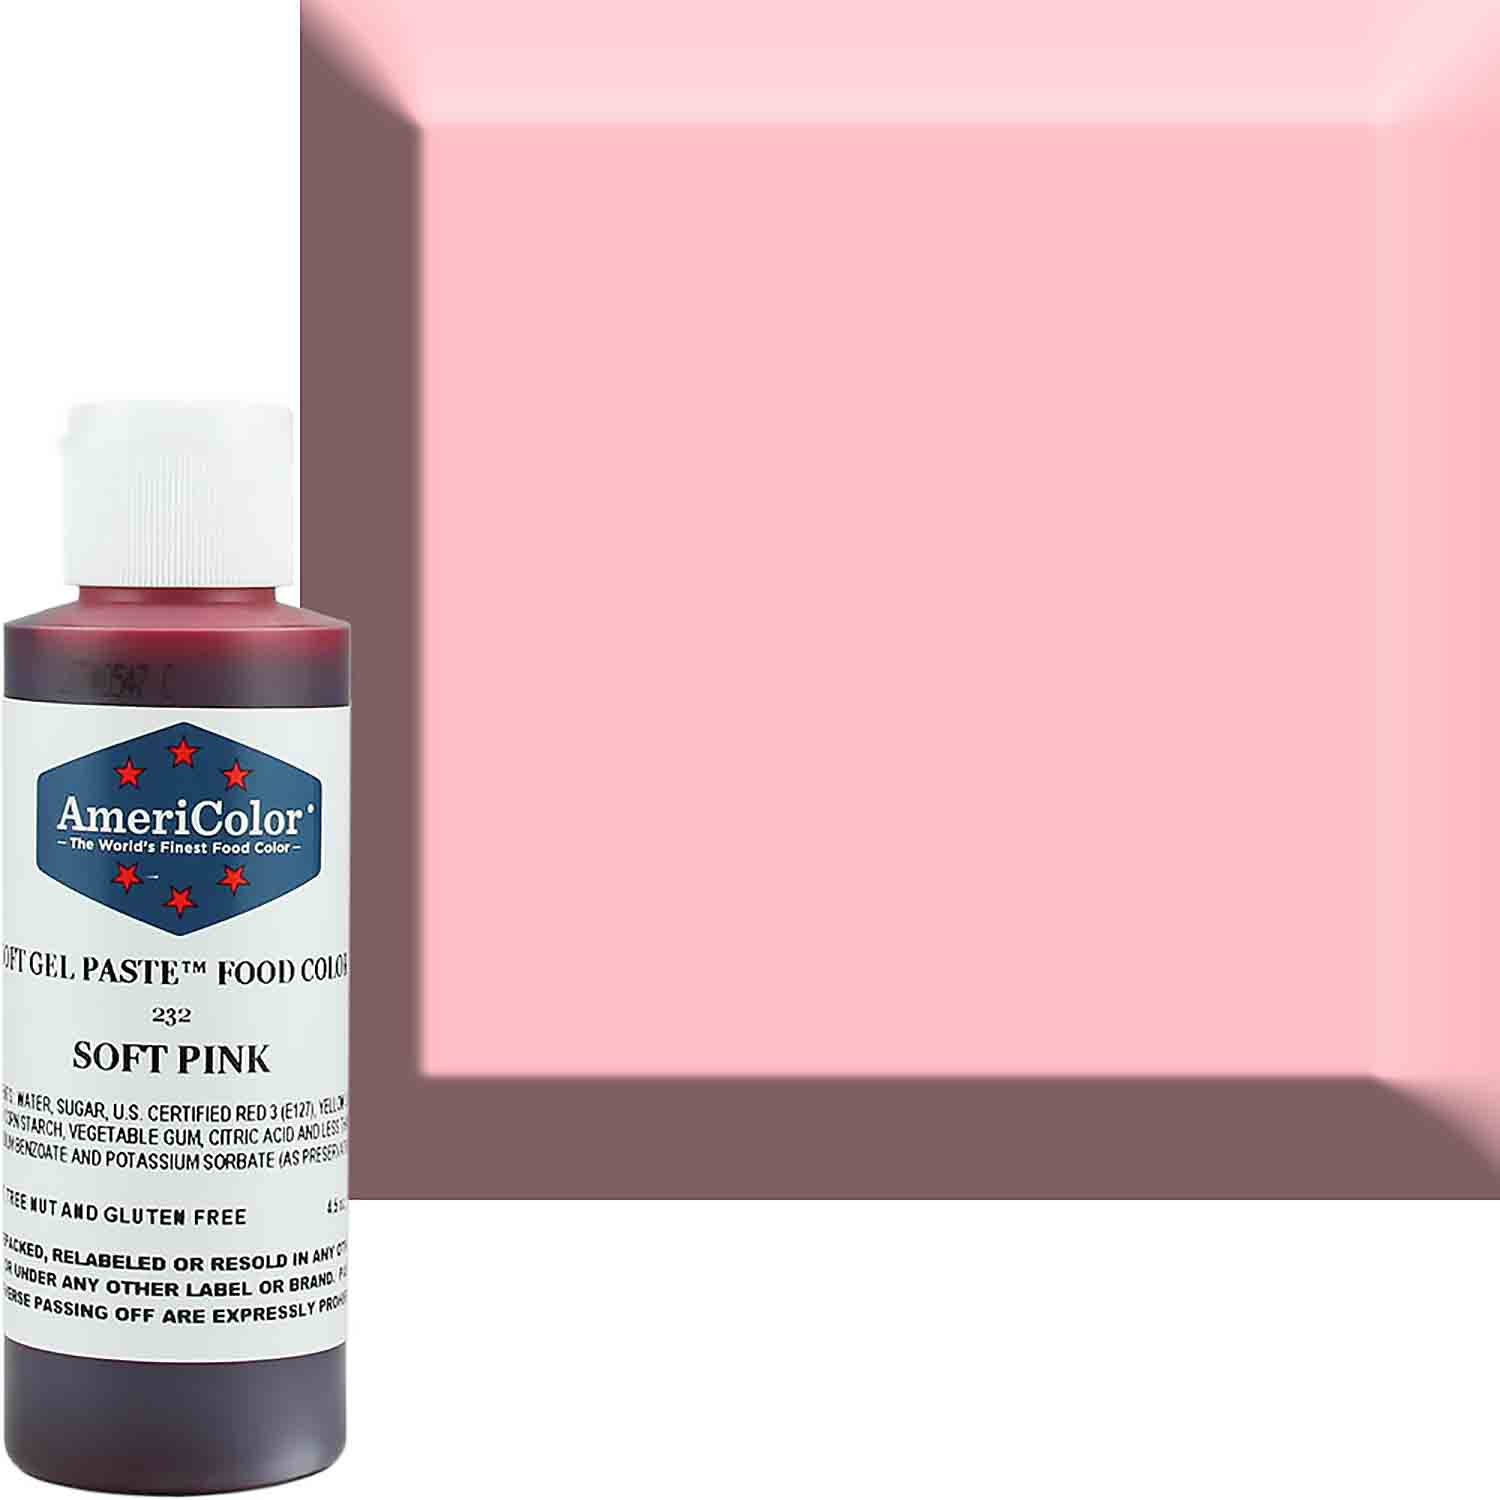 Soft Pink Americolor® Soft Gel Paste Food Color (Old # 41-7832)